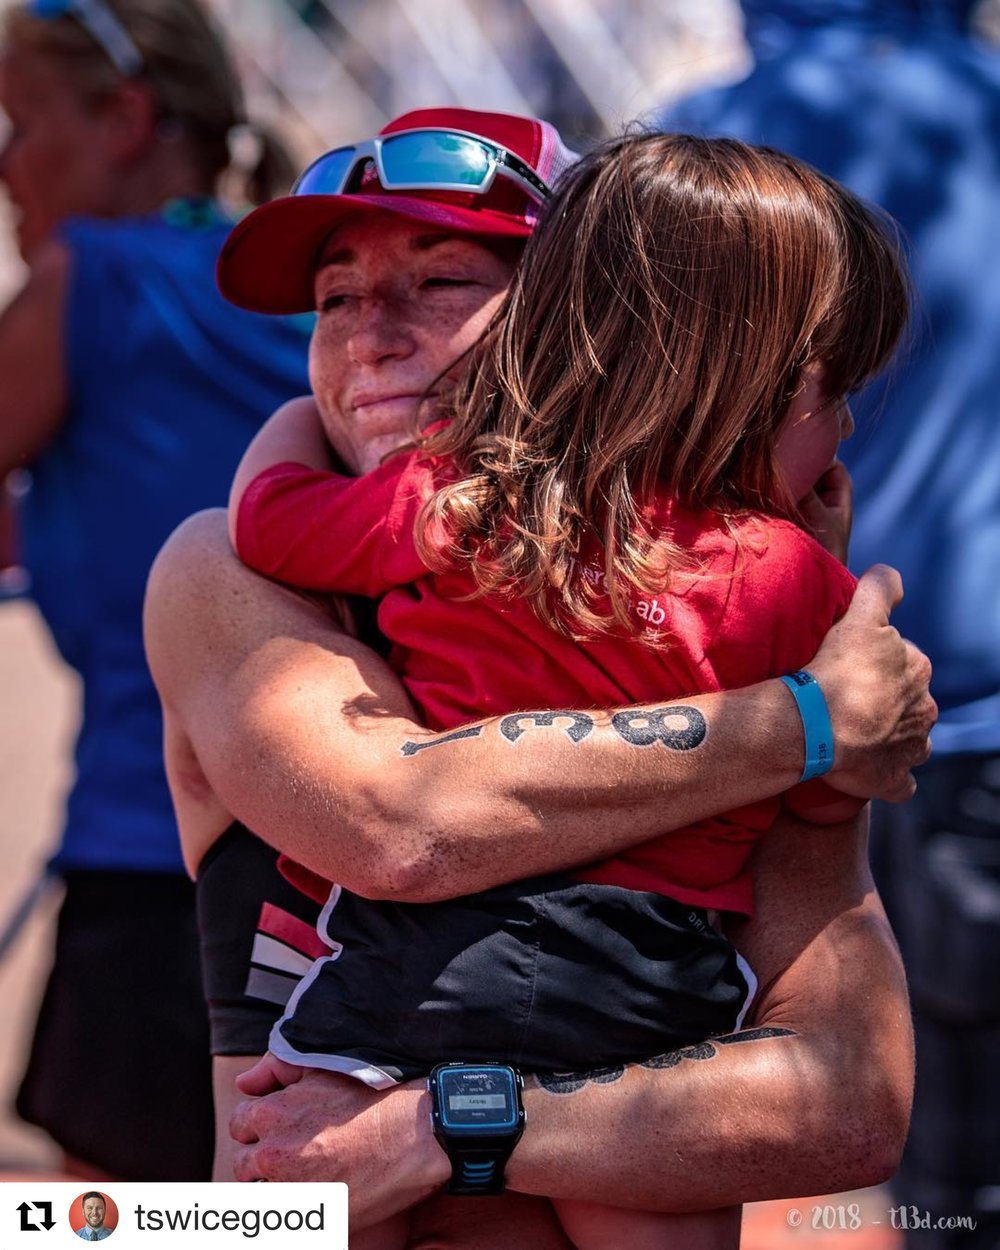 Hugging my sweet Ada after finishing Ironman 70.3 Buffalo Springs Lake. (Photo by Travis Swicegood)